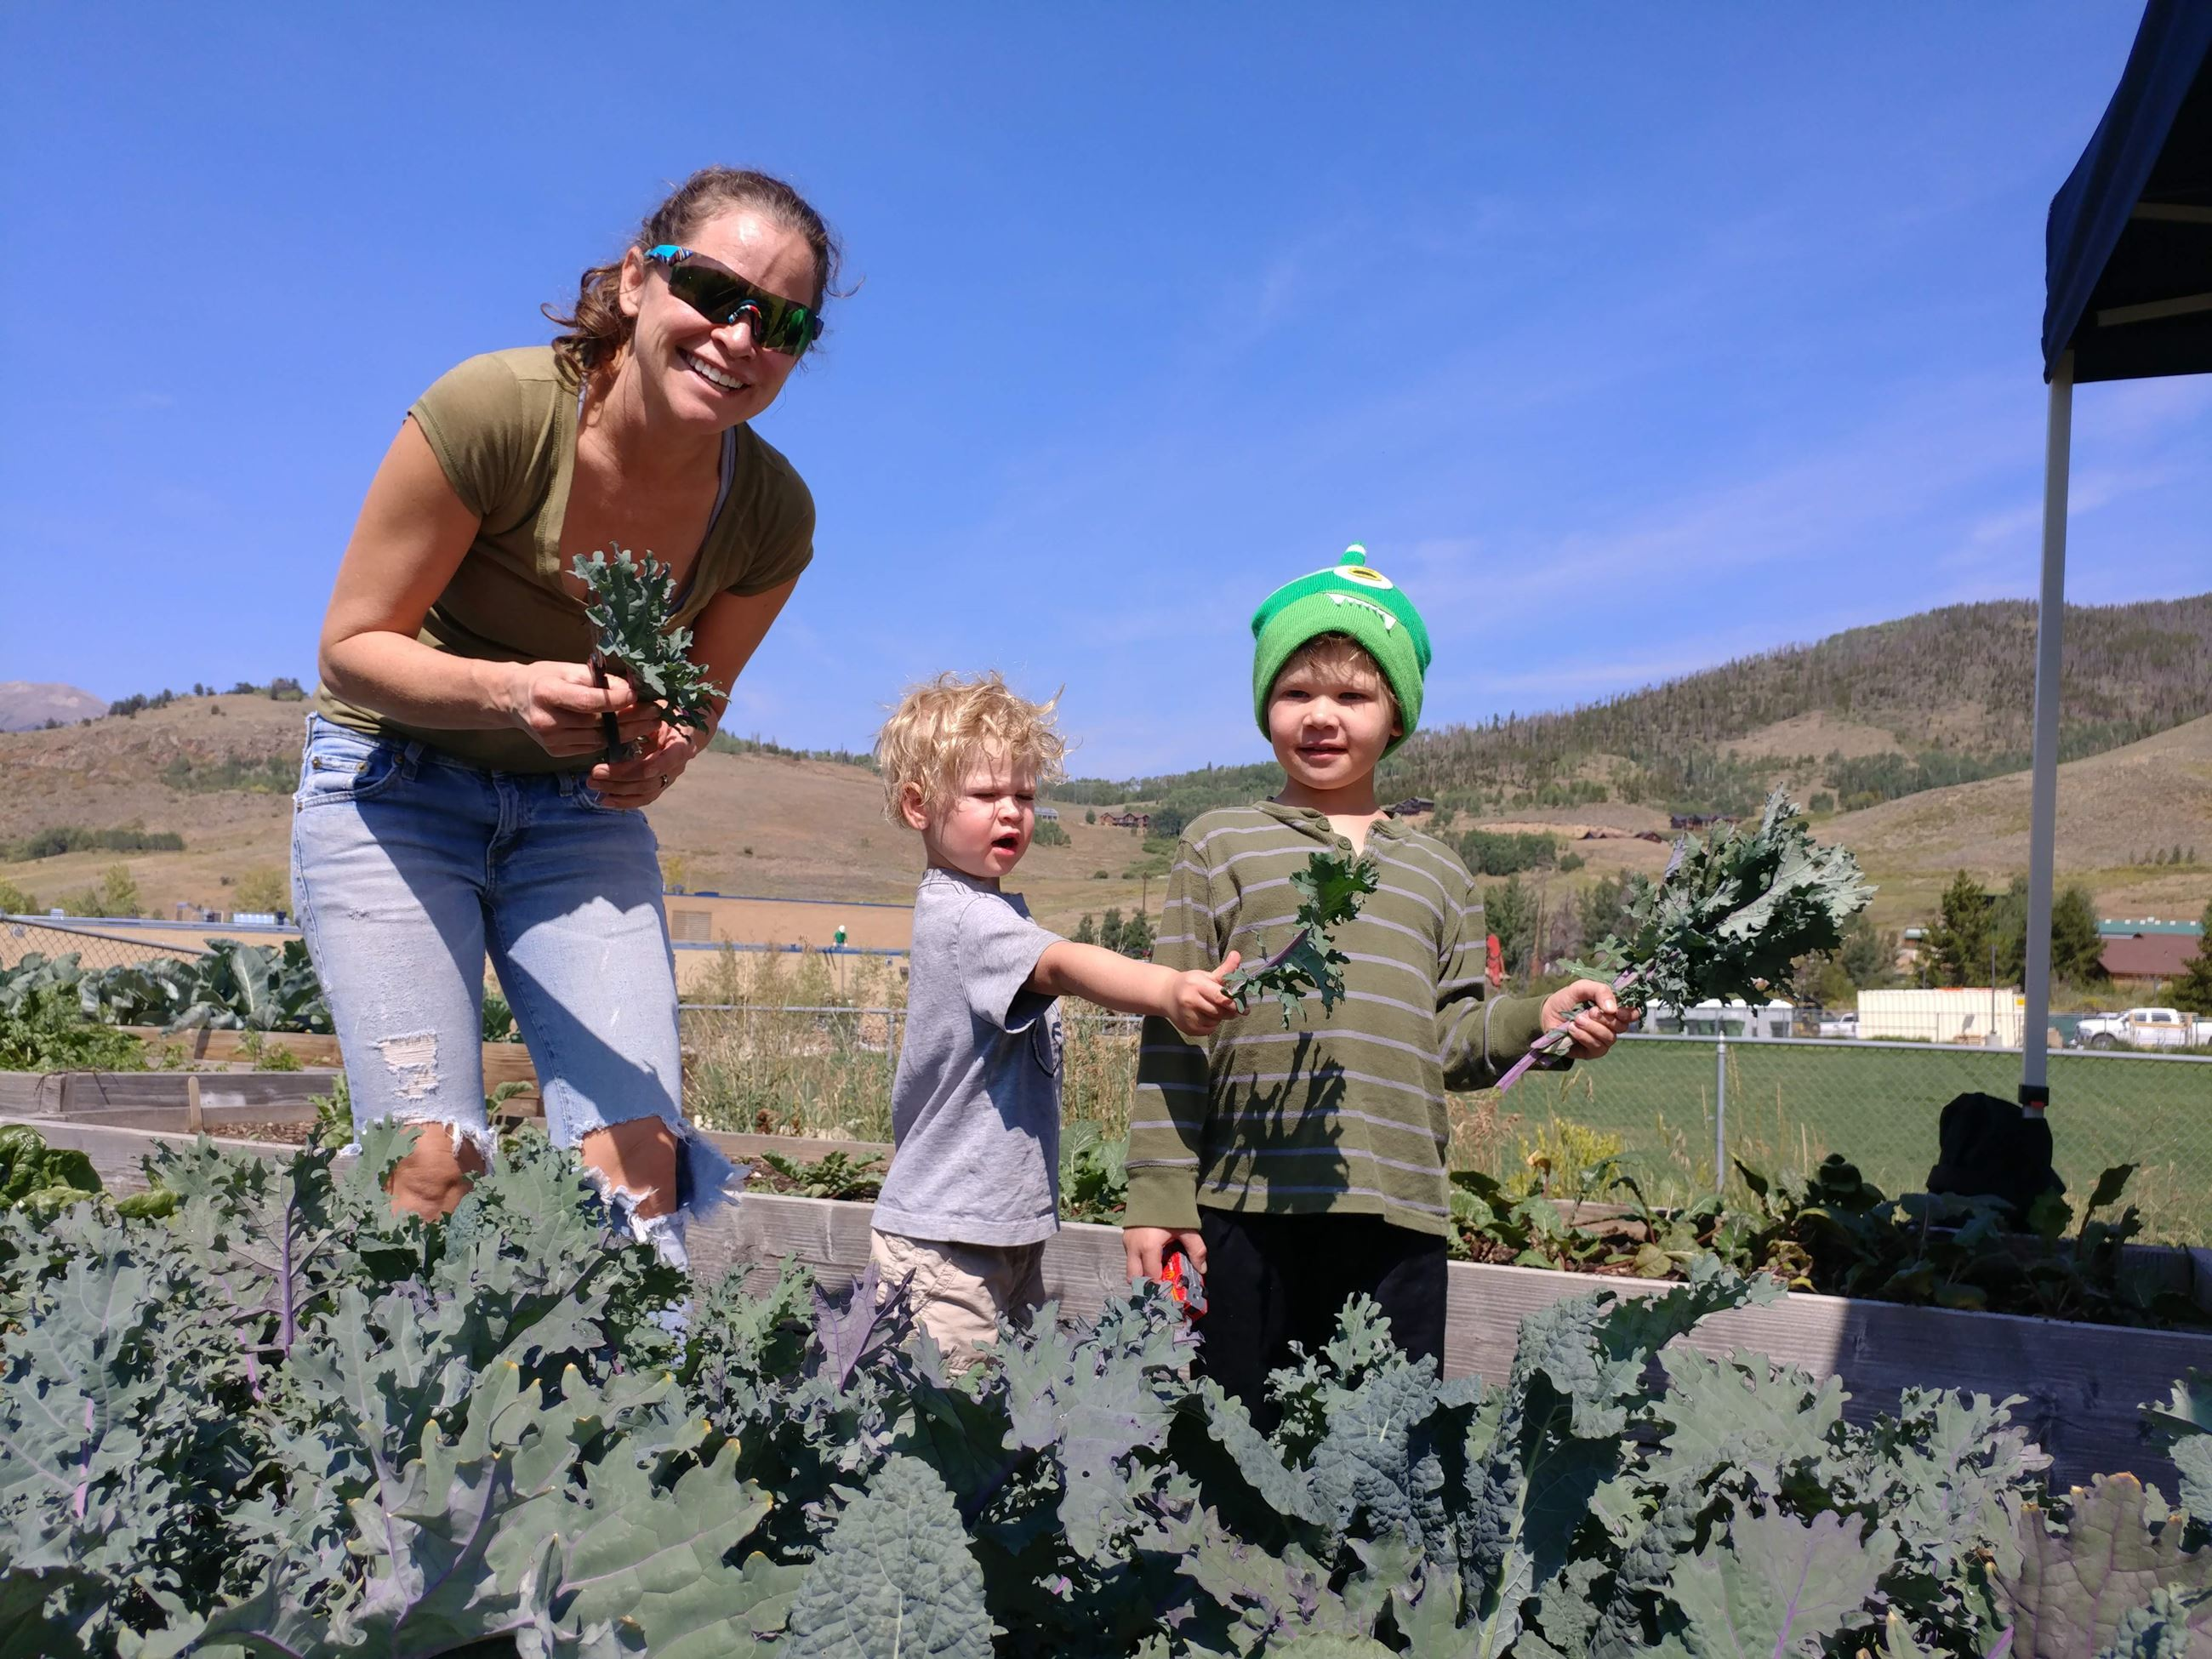 Residents harvesting kale from a community garden.